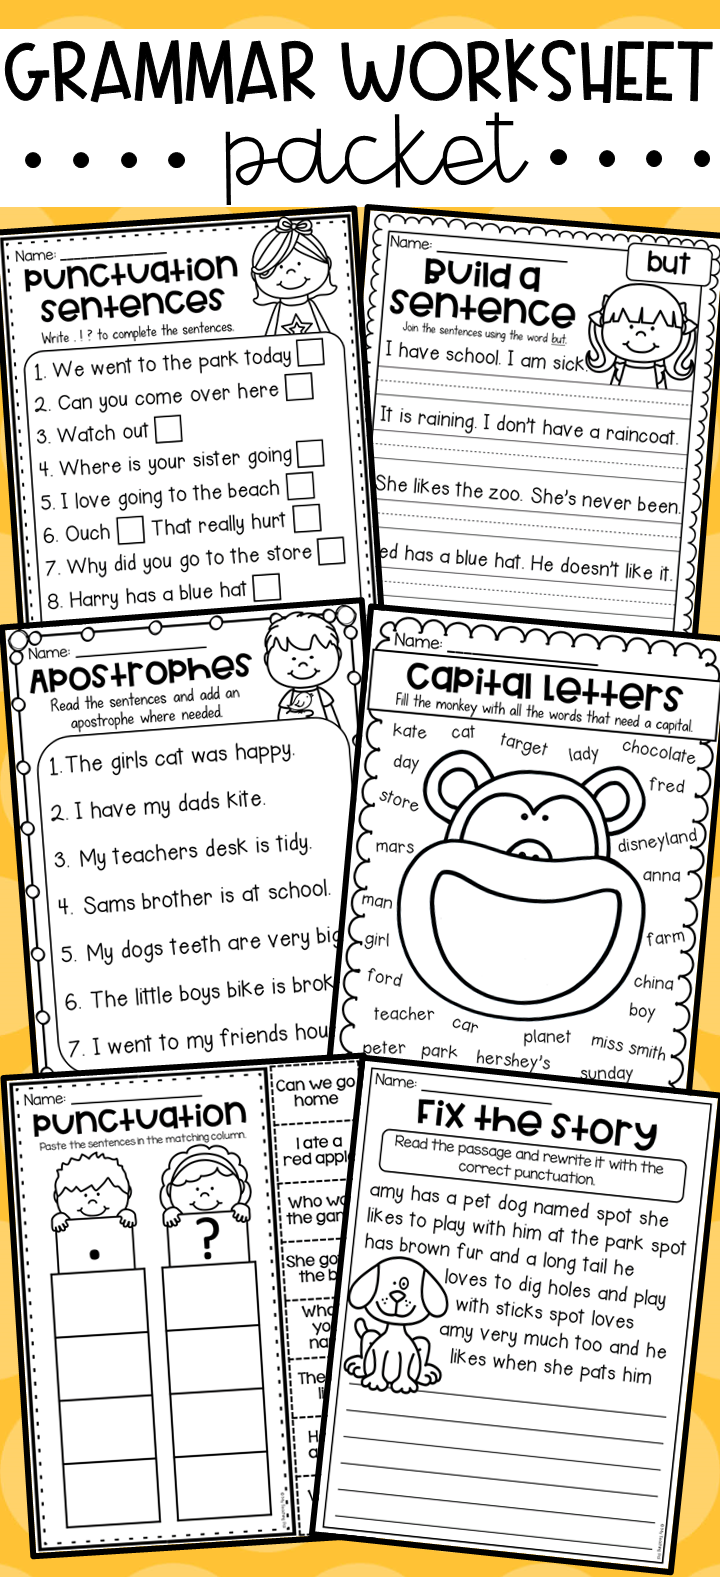 small resolution of Grammar worksheets for punctuation